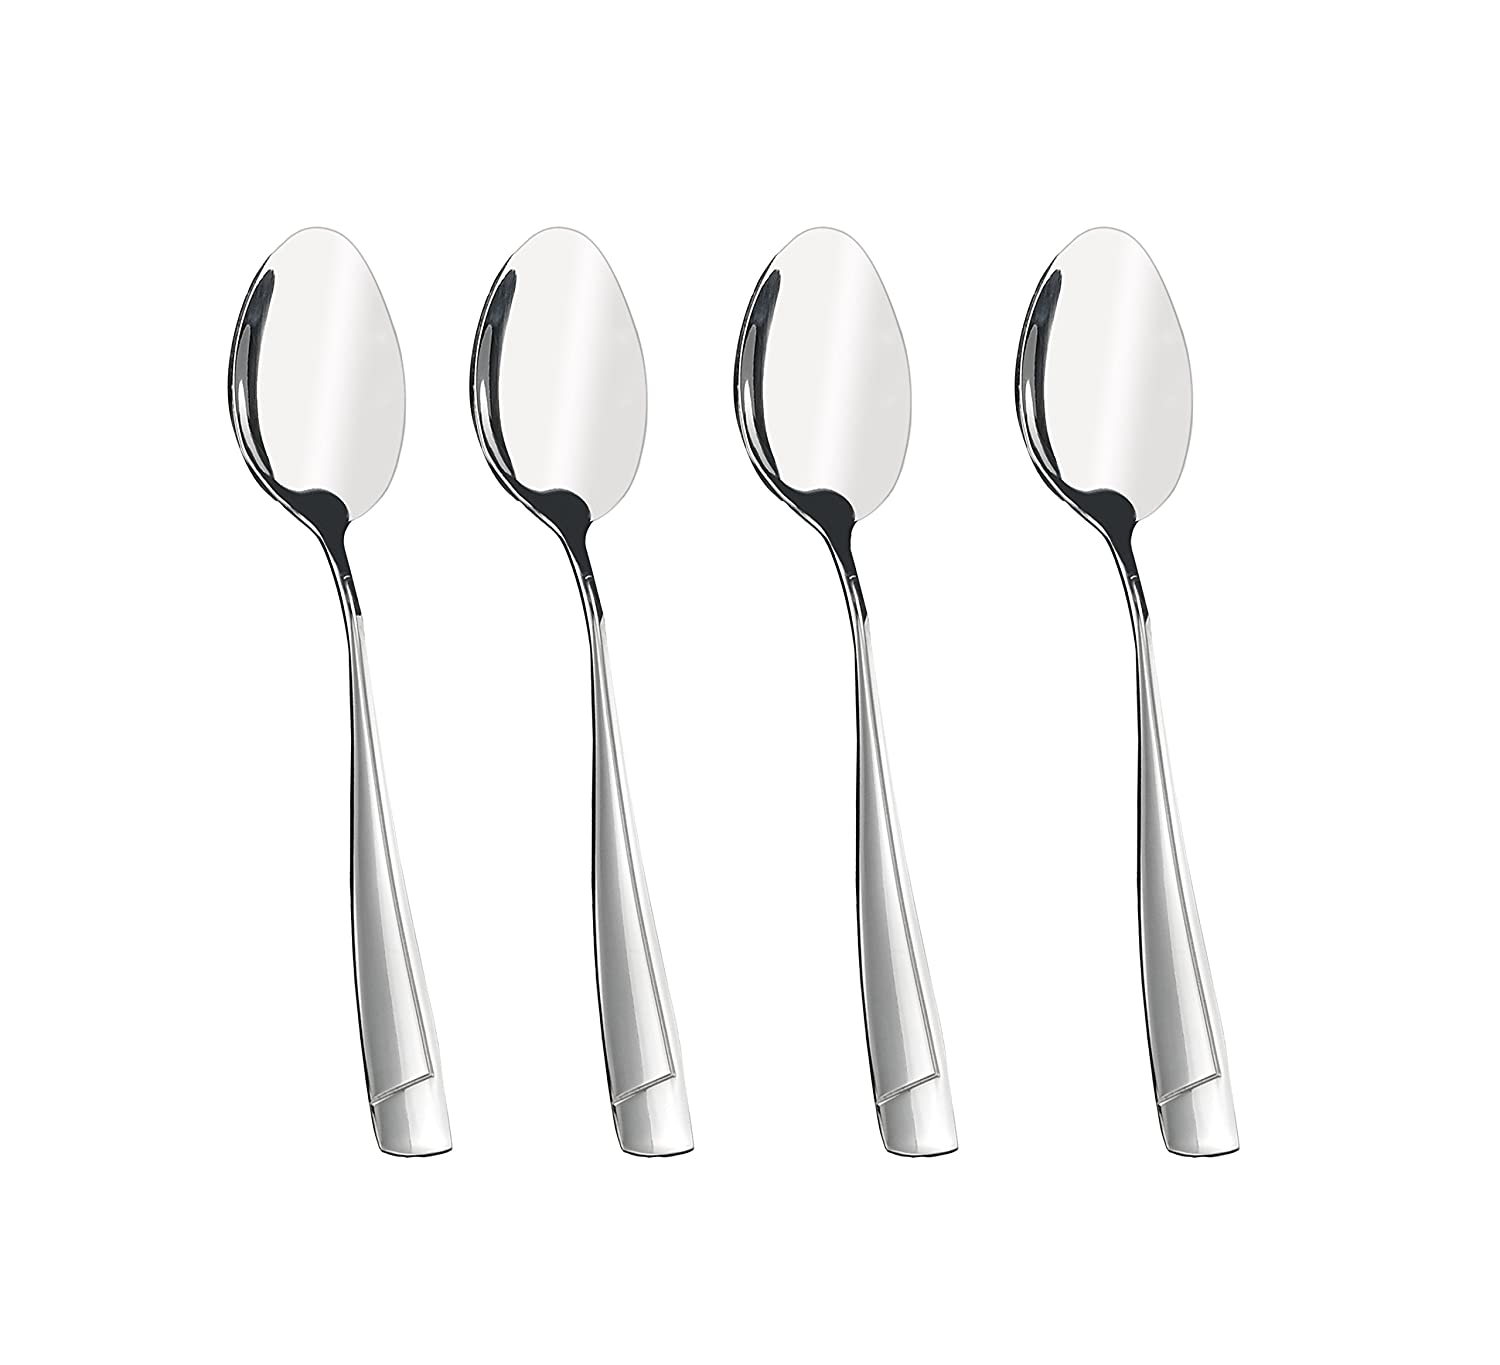 Cand 16 Pieces Stainless Steel Dessert Spoons, 6.69-Inch Candseason